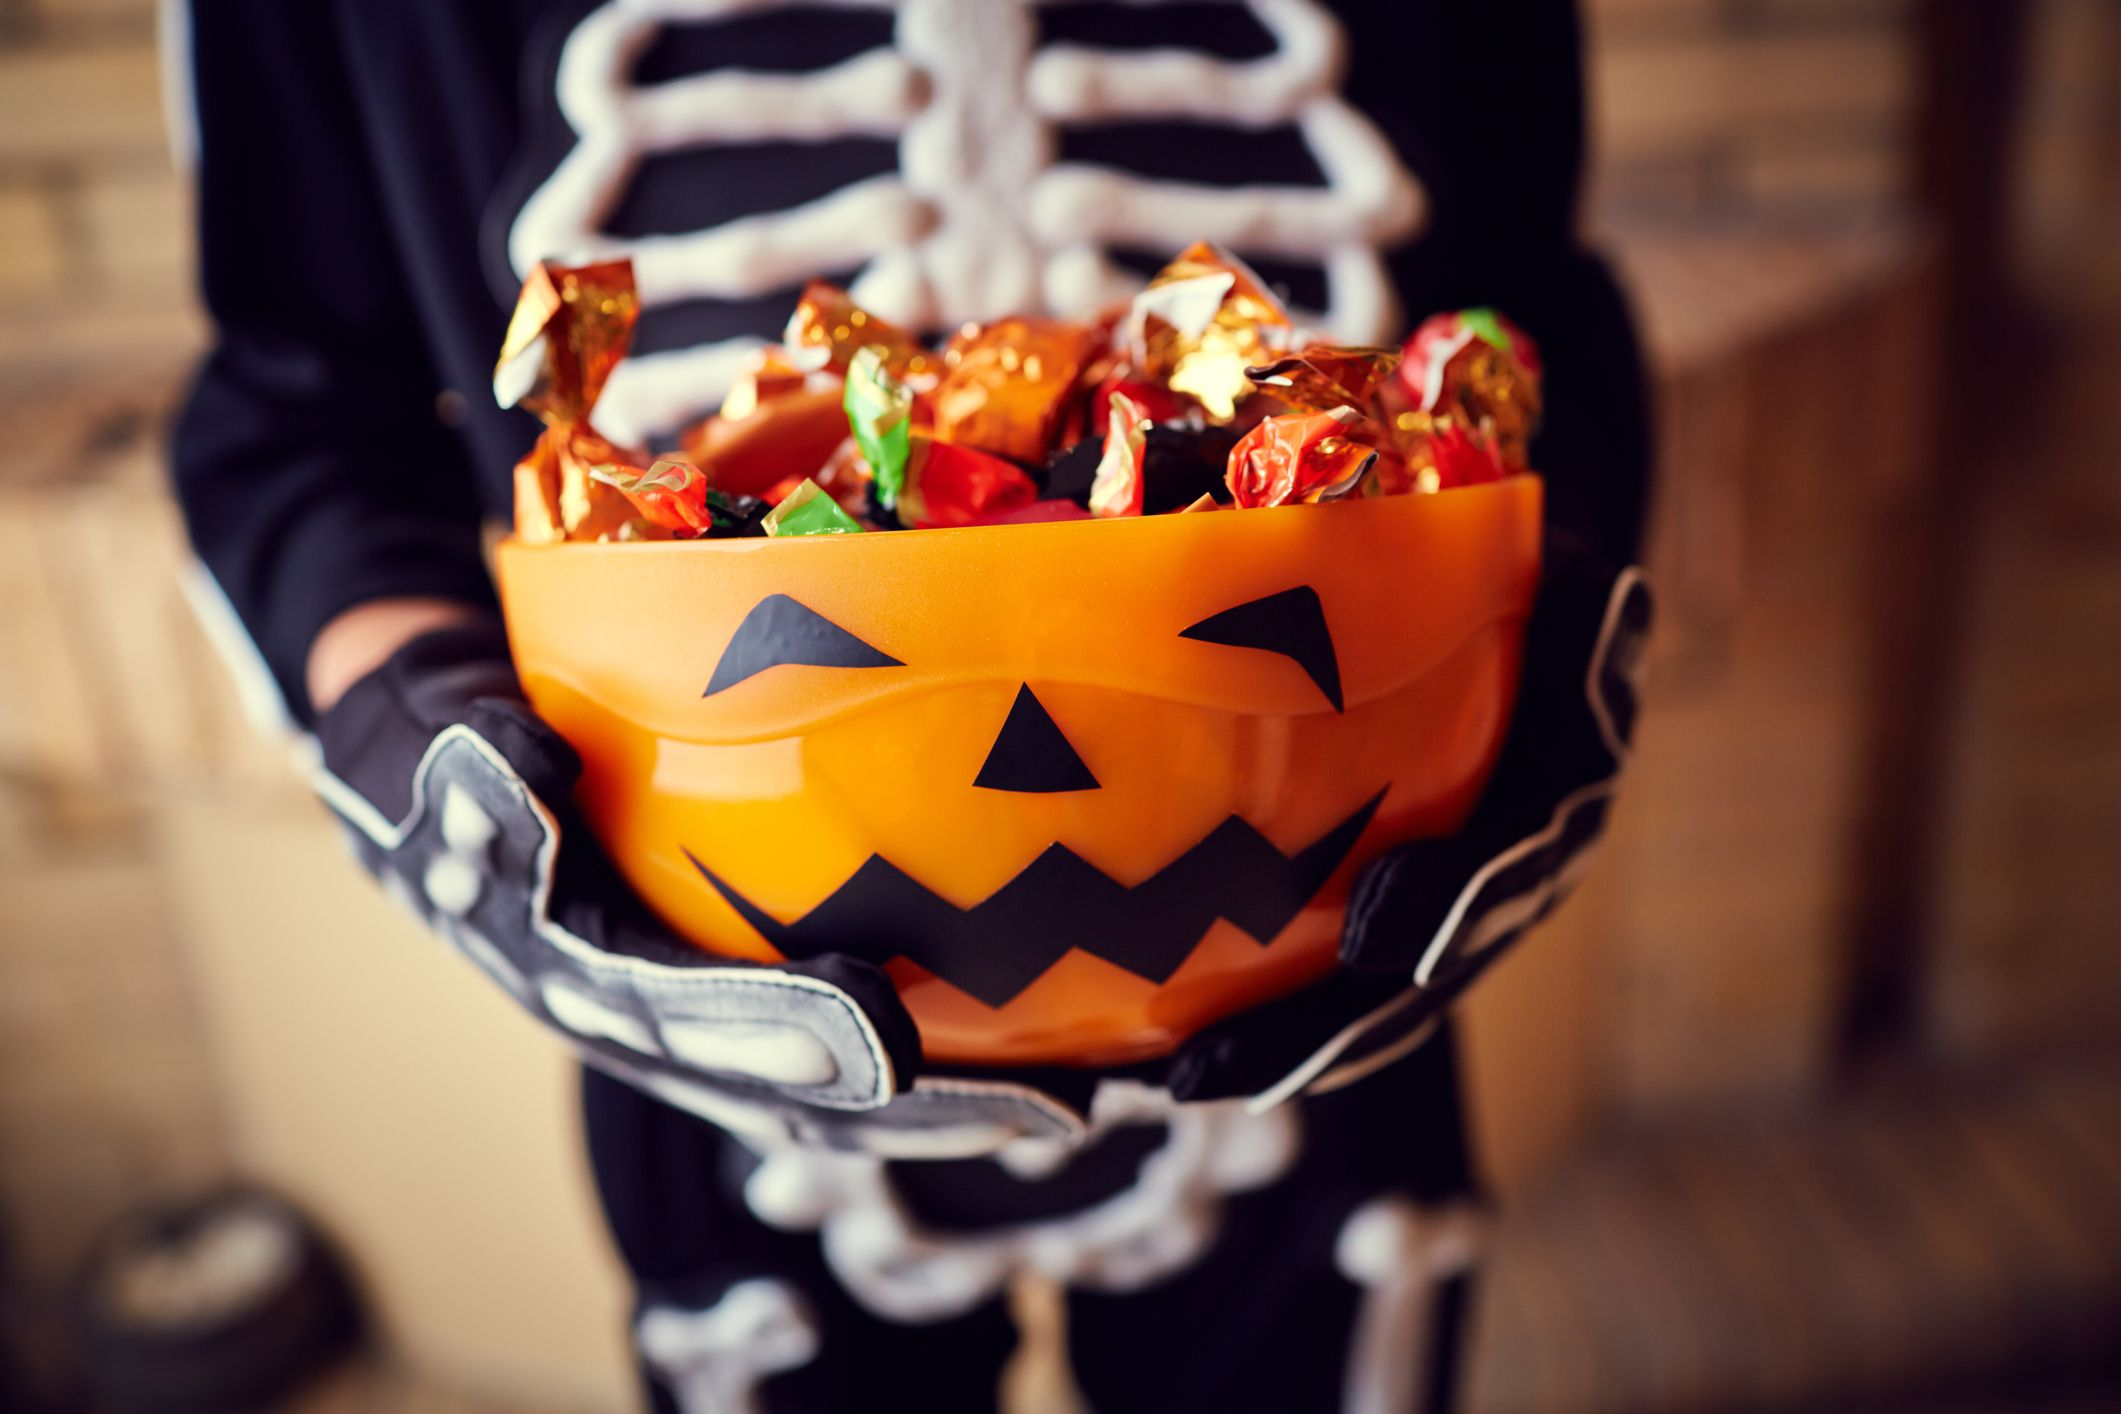 Halloween Age Limits 2020 What Age Should You Stop Trick or Treating on Halloween? Parenting